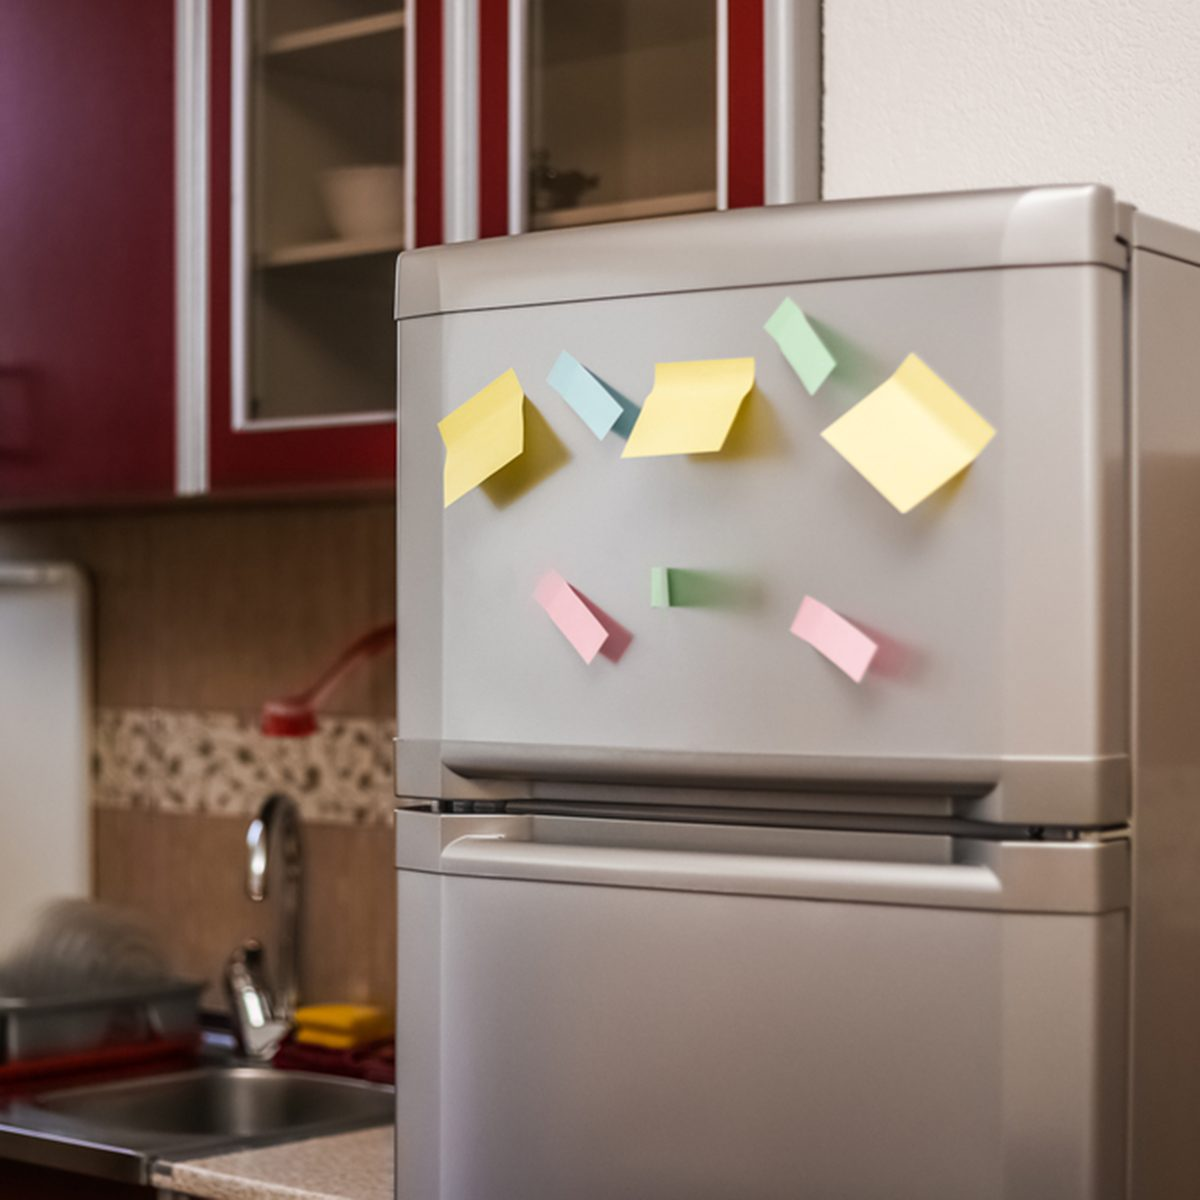 Empty paper sheet on refrigerator door with magnetic clip paper note for add text message.; Shutterstock ID 716205340; Job (TFH, TOH, RD, BNB, CWM, CM): TOH